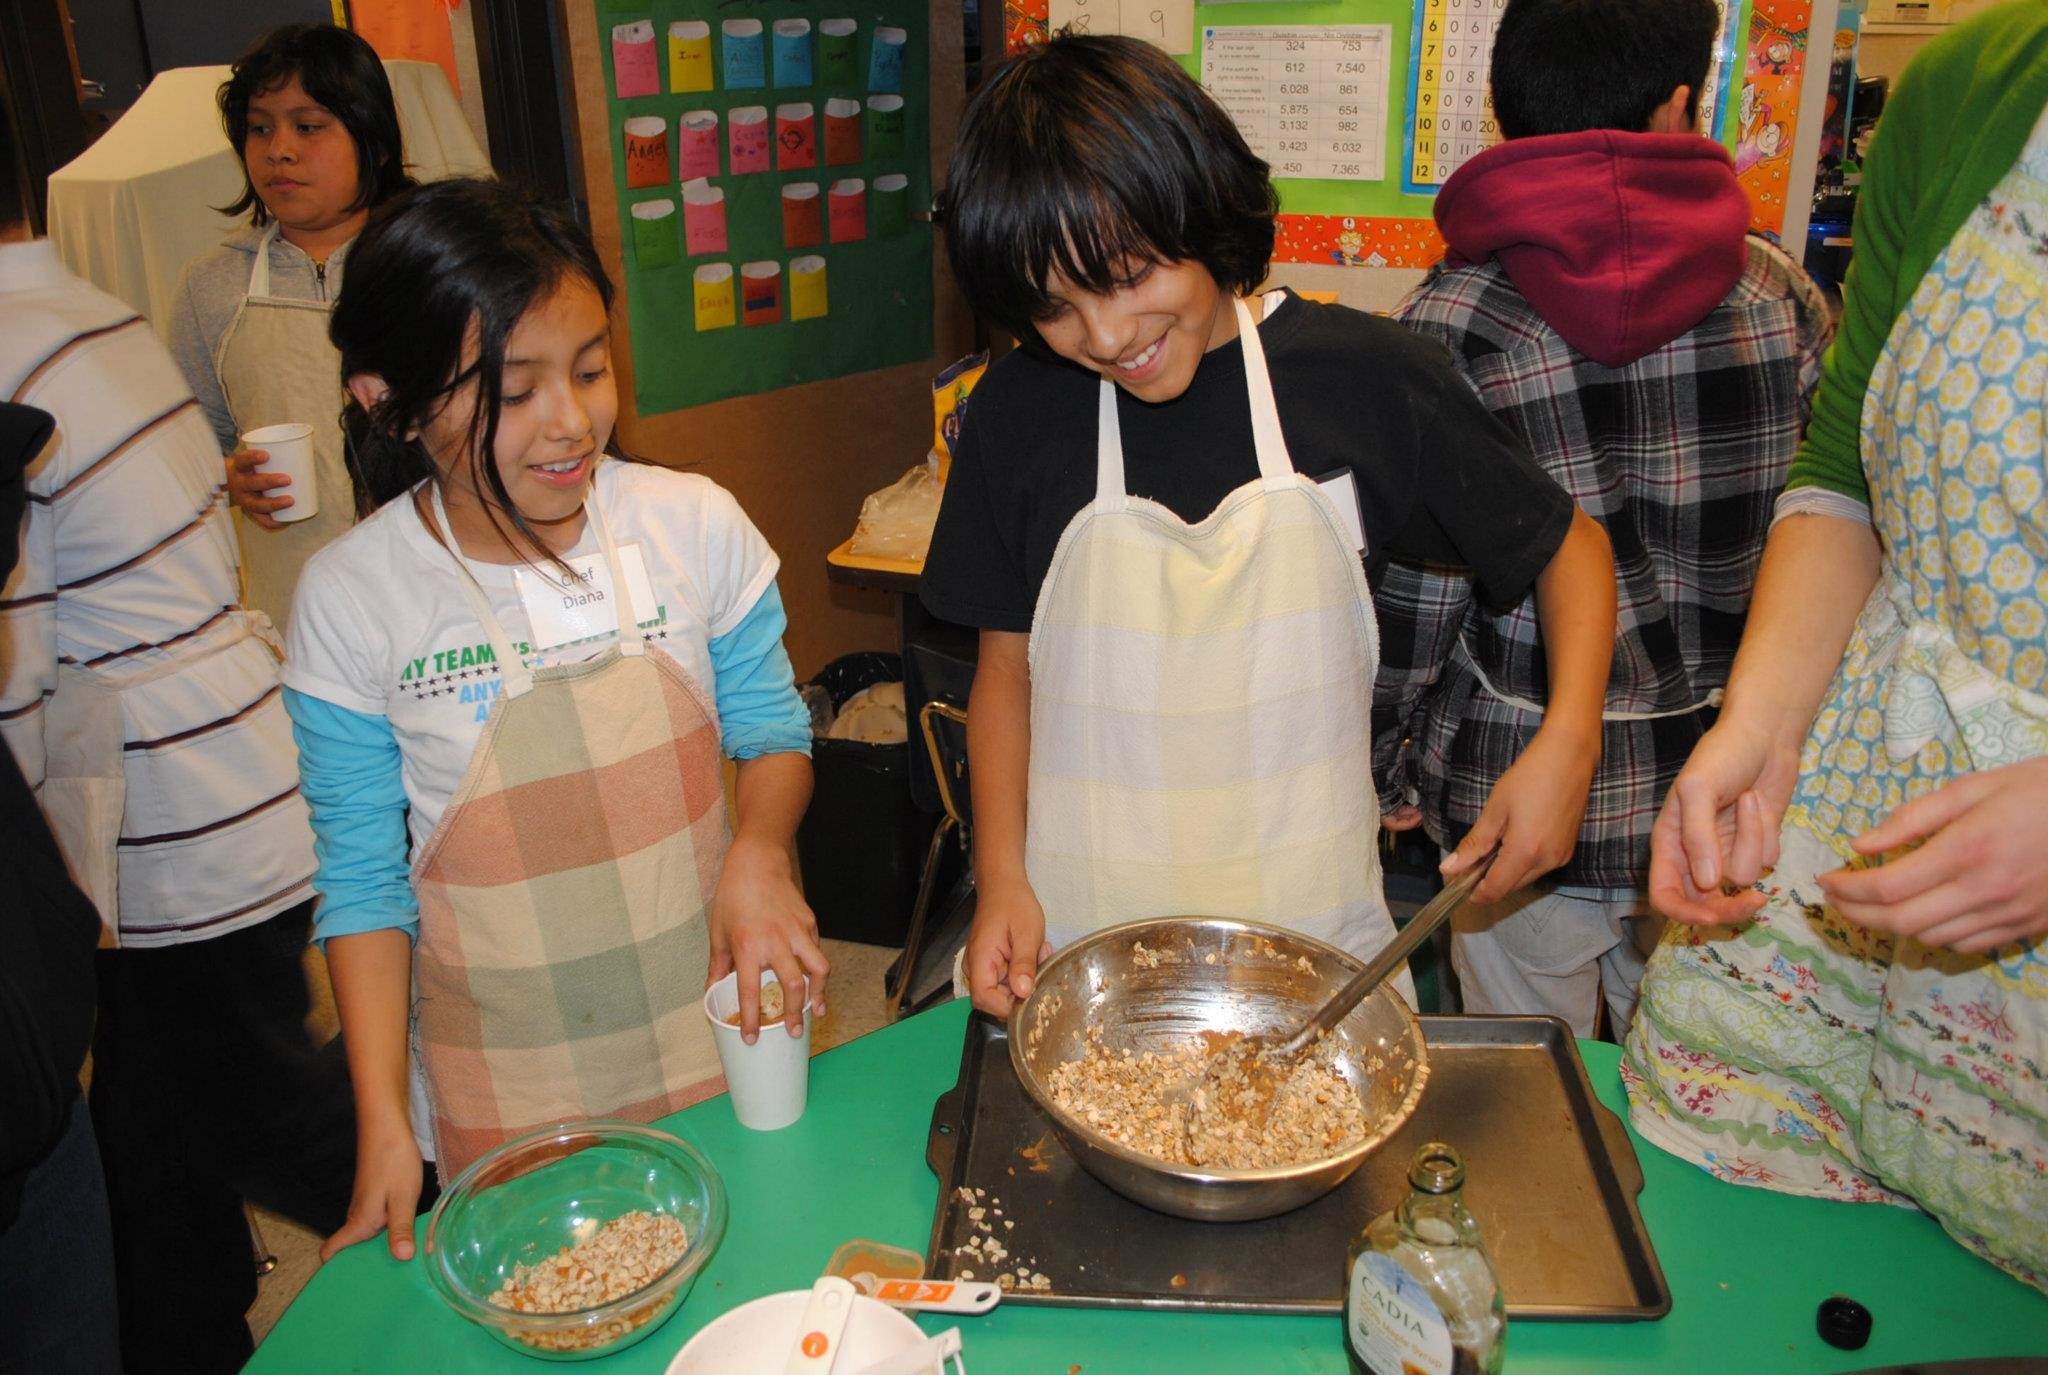 2 students stirring food in a bowl